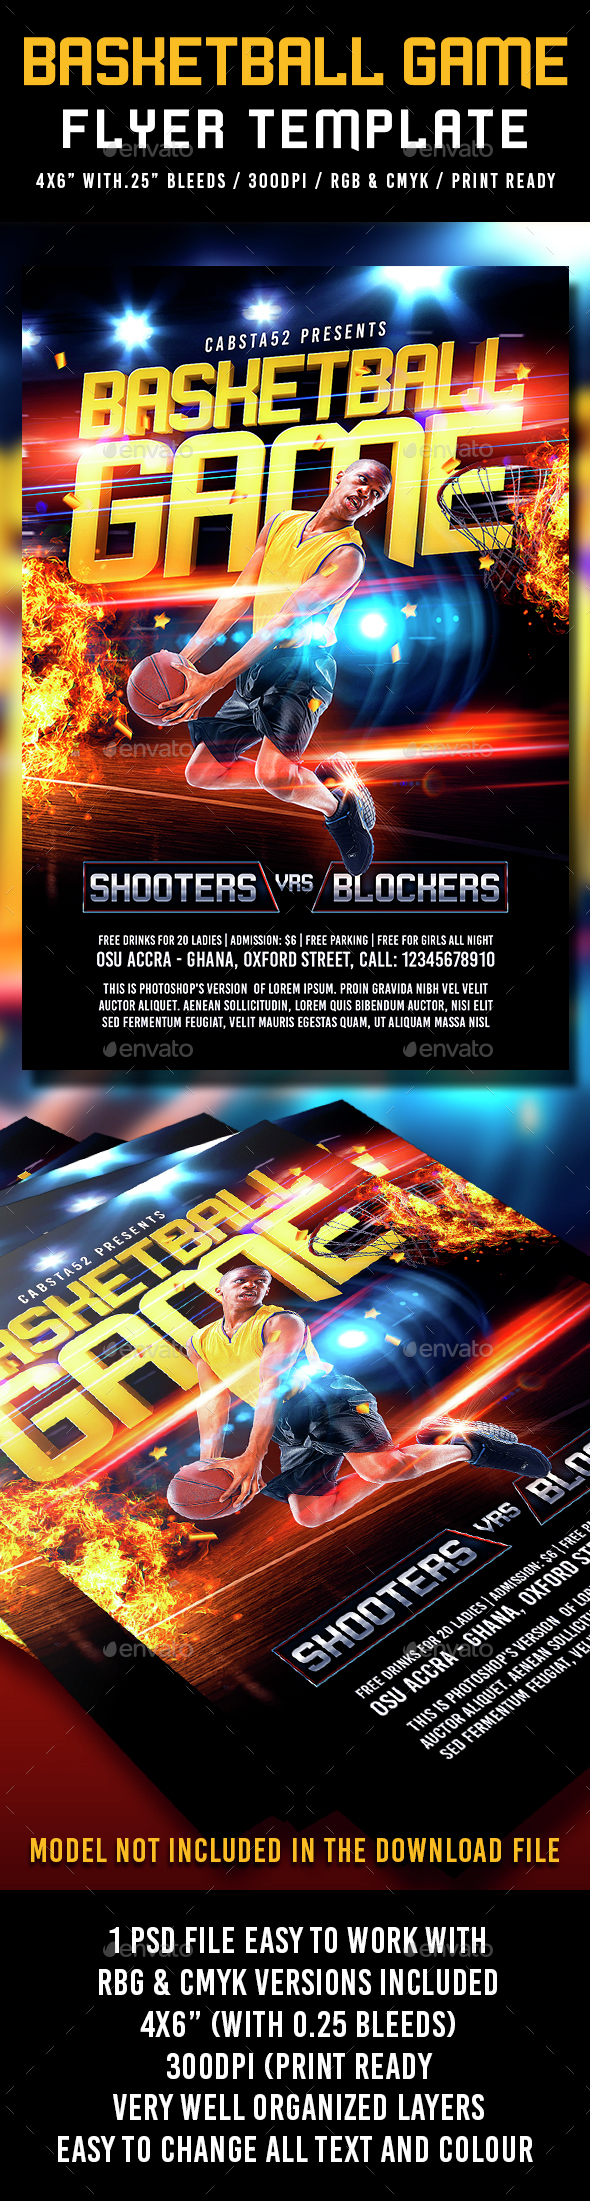 Basketball Game Flyer Template - Flyers Print Templates